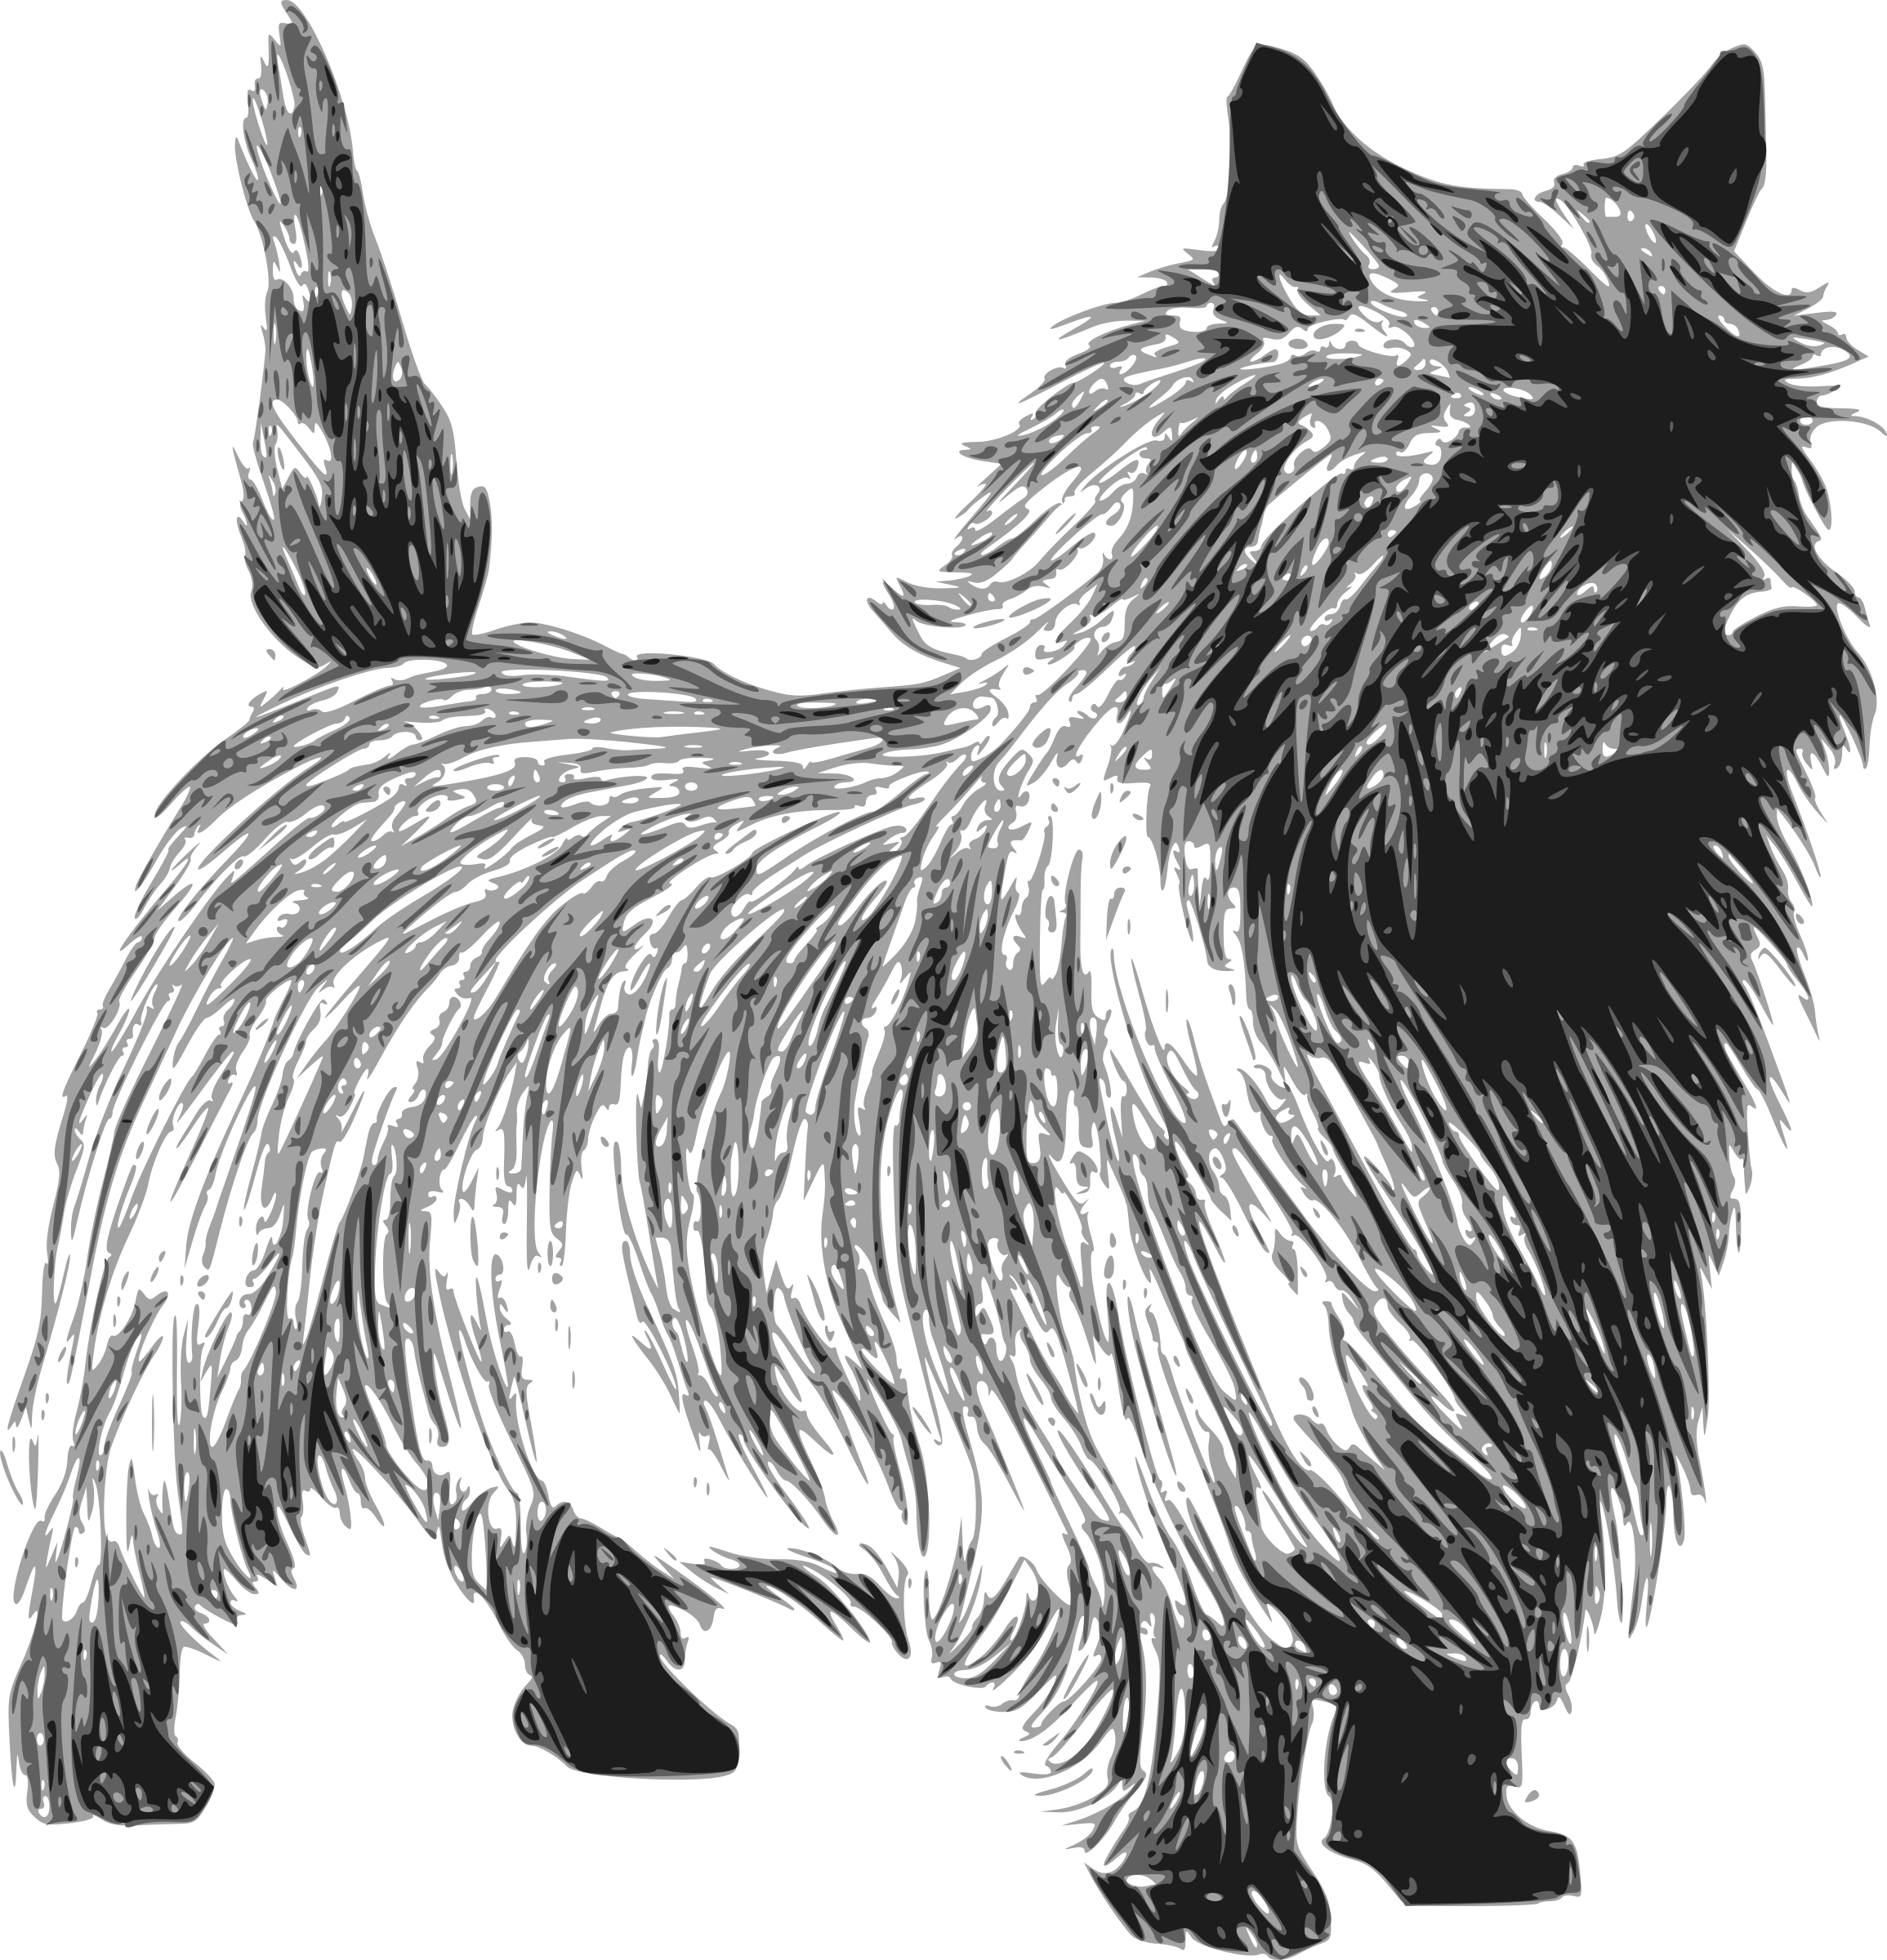 Cairn terrier by papapishu